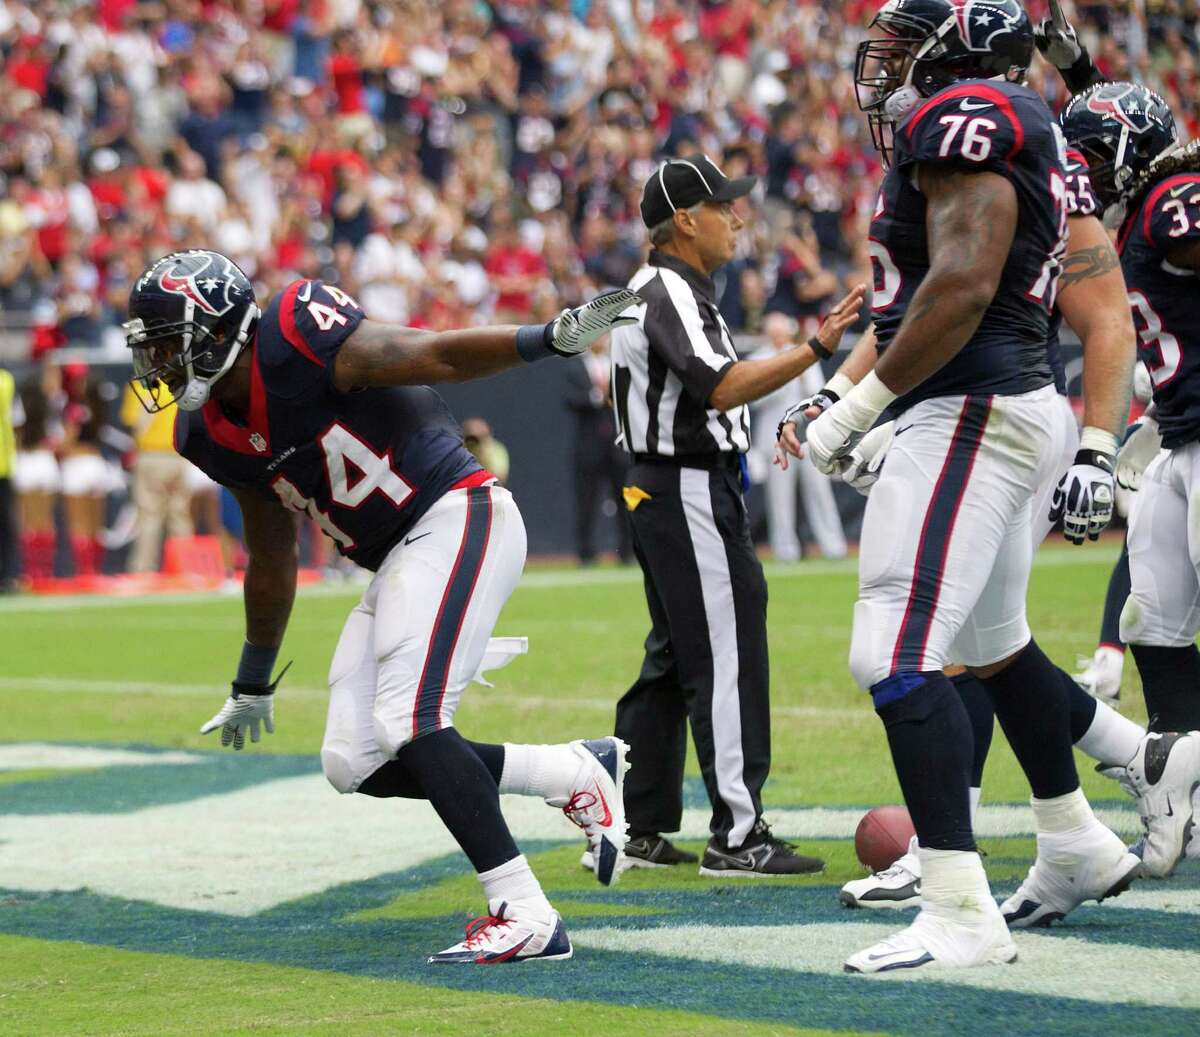 Texans running back Ben Tate, left, was ready for takeoff after his 1-yard touchdown in the first quarter. Tate rushed for 74 yards.